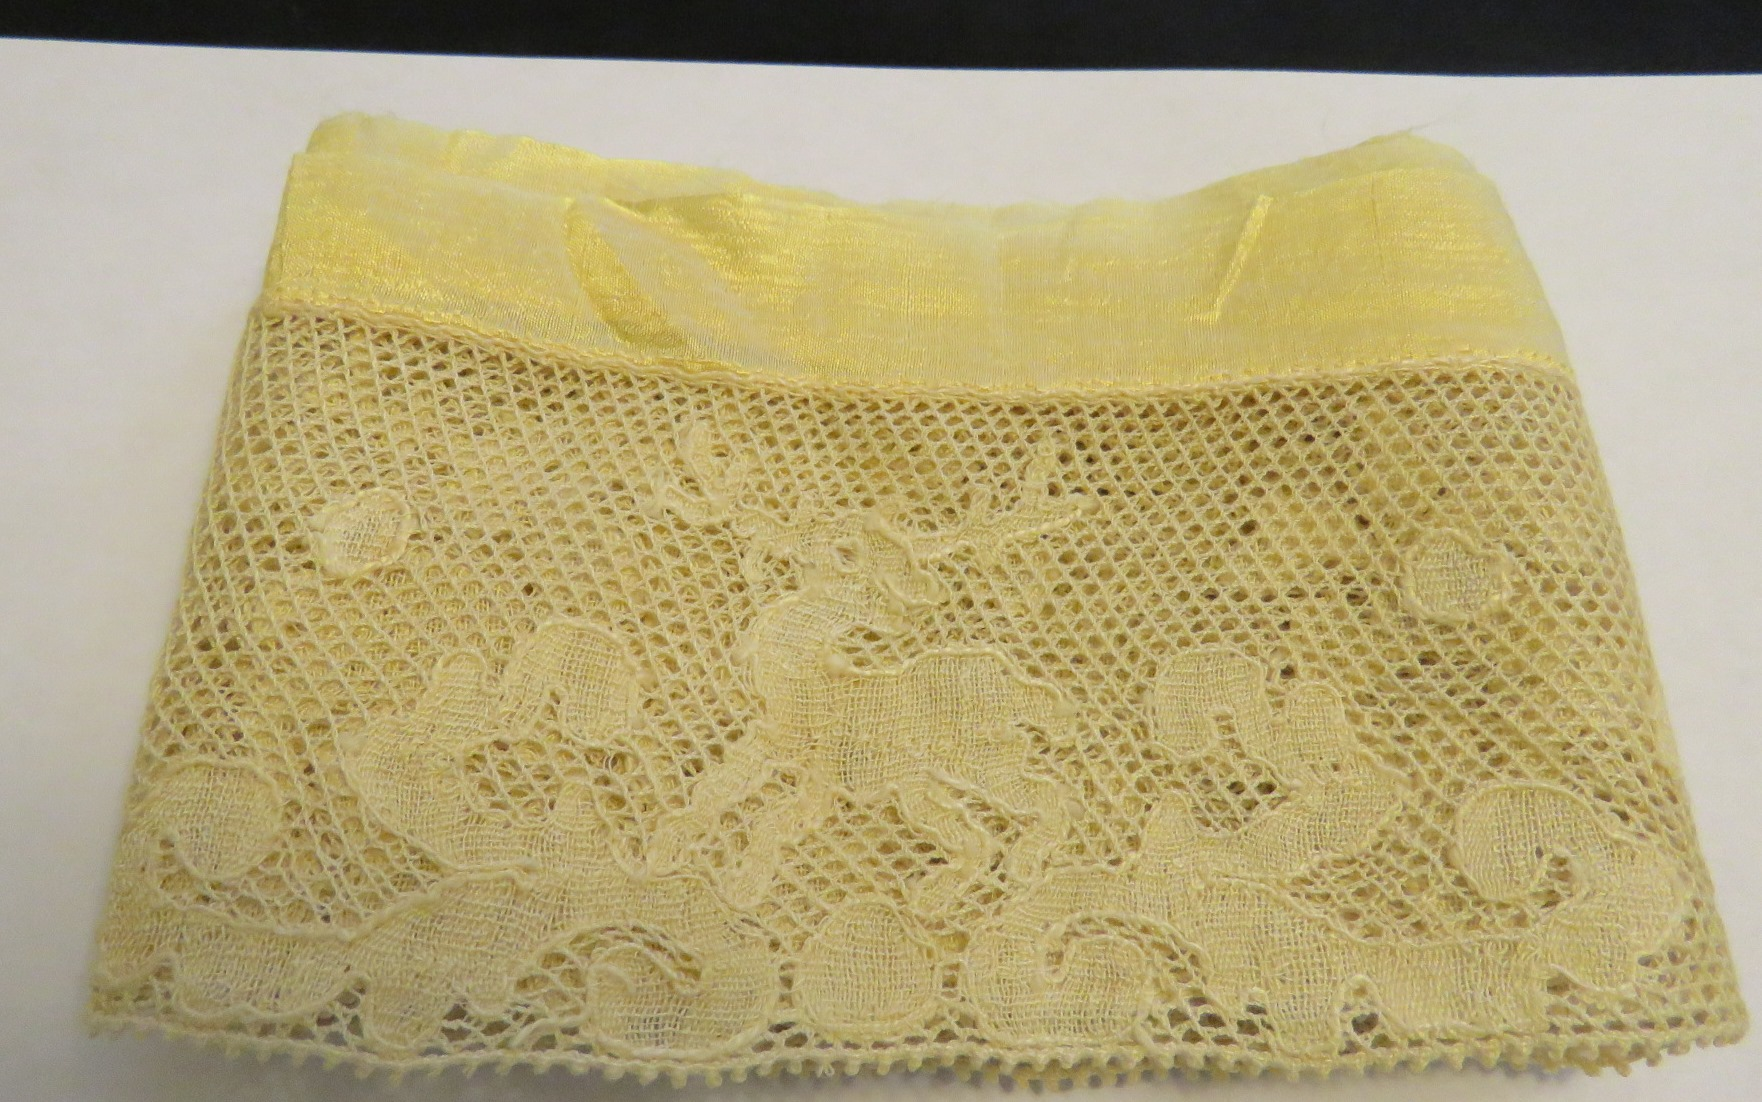 Antique Figural Stag Lace Trim Point de Paris Bobbin Lace (LAC-324) in Lace